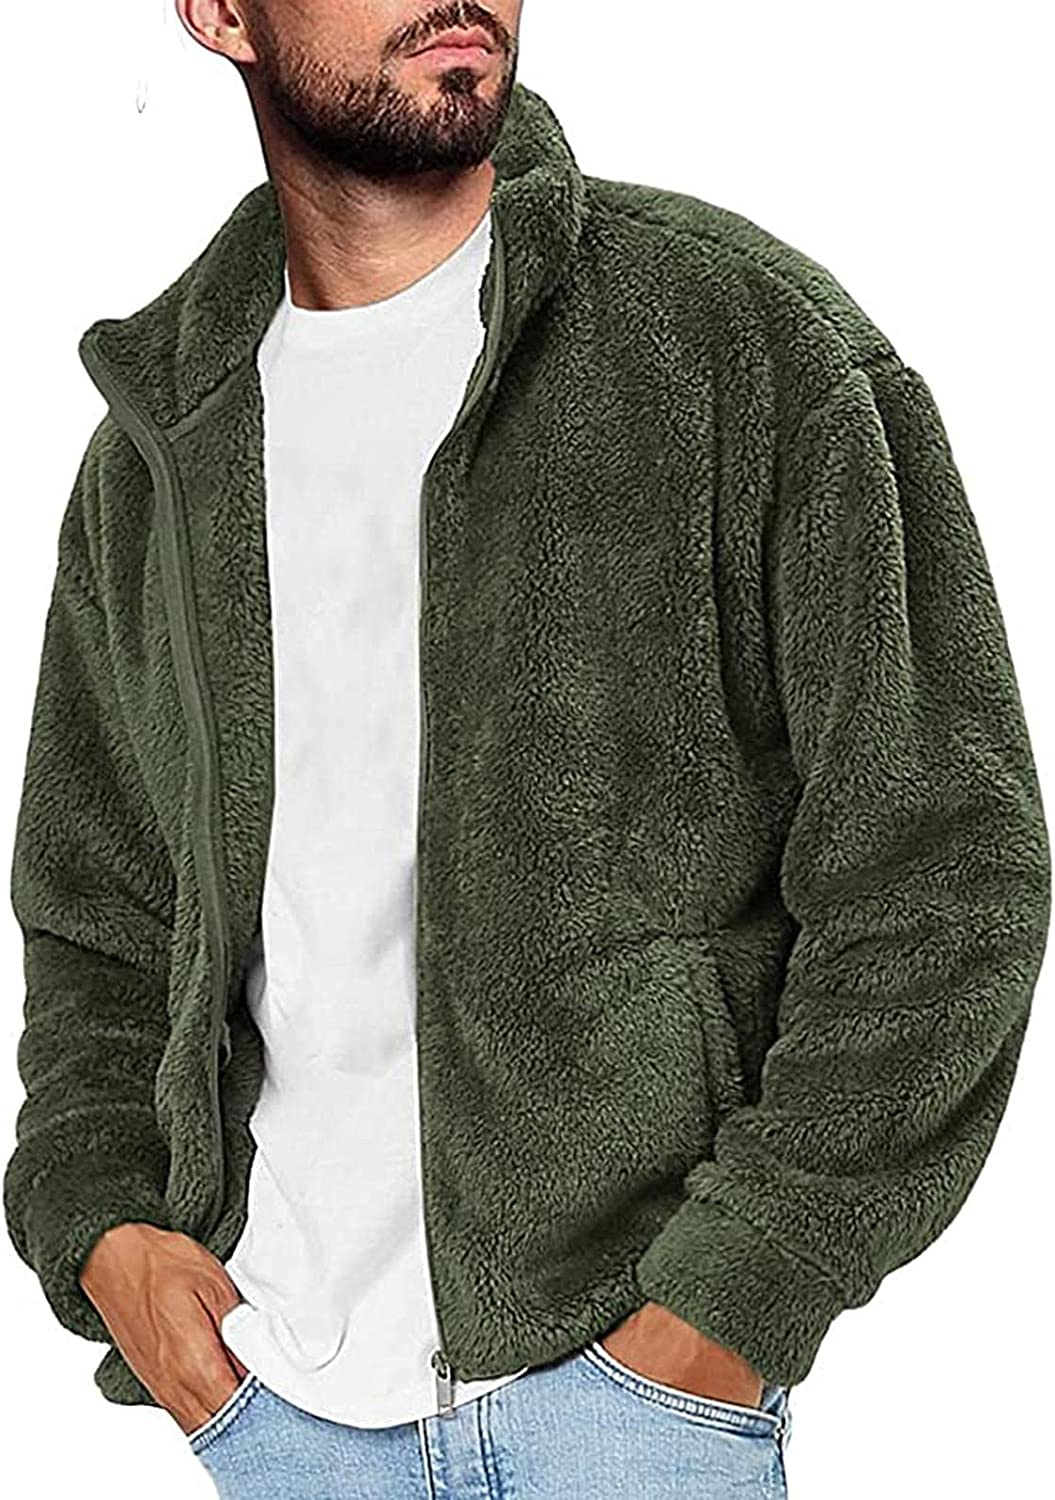 NOLDARES Mens Cardigan Coat Ranking TOP2 Fuzzy Jacket Sweaters for Men quality assurance Casual